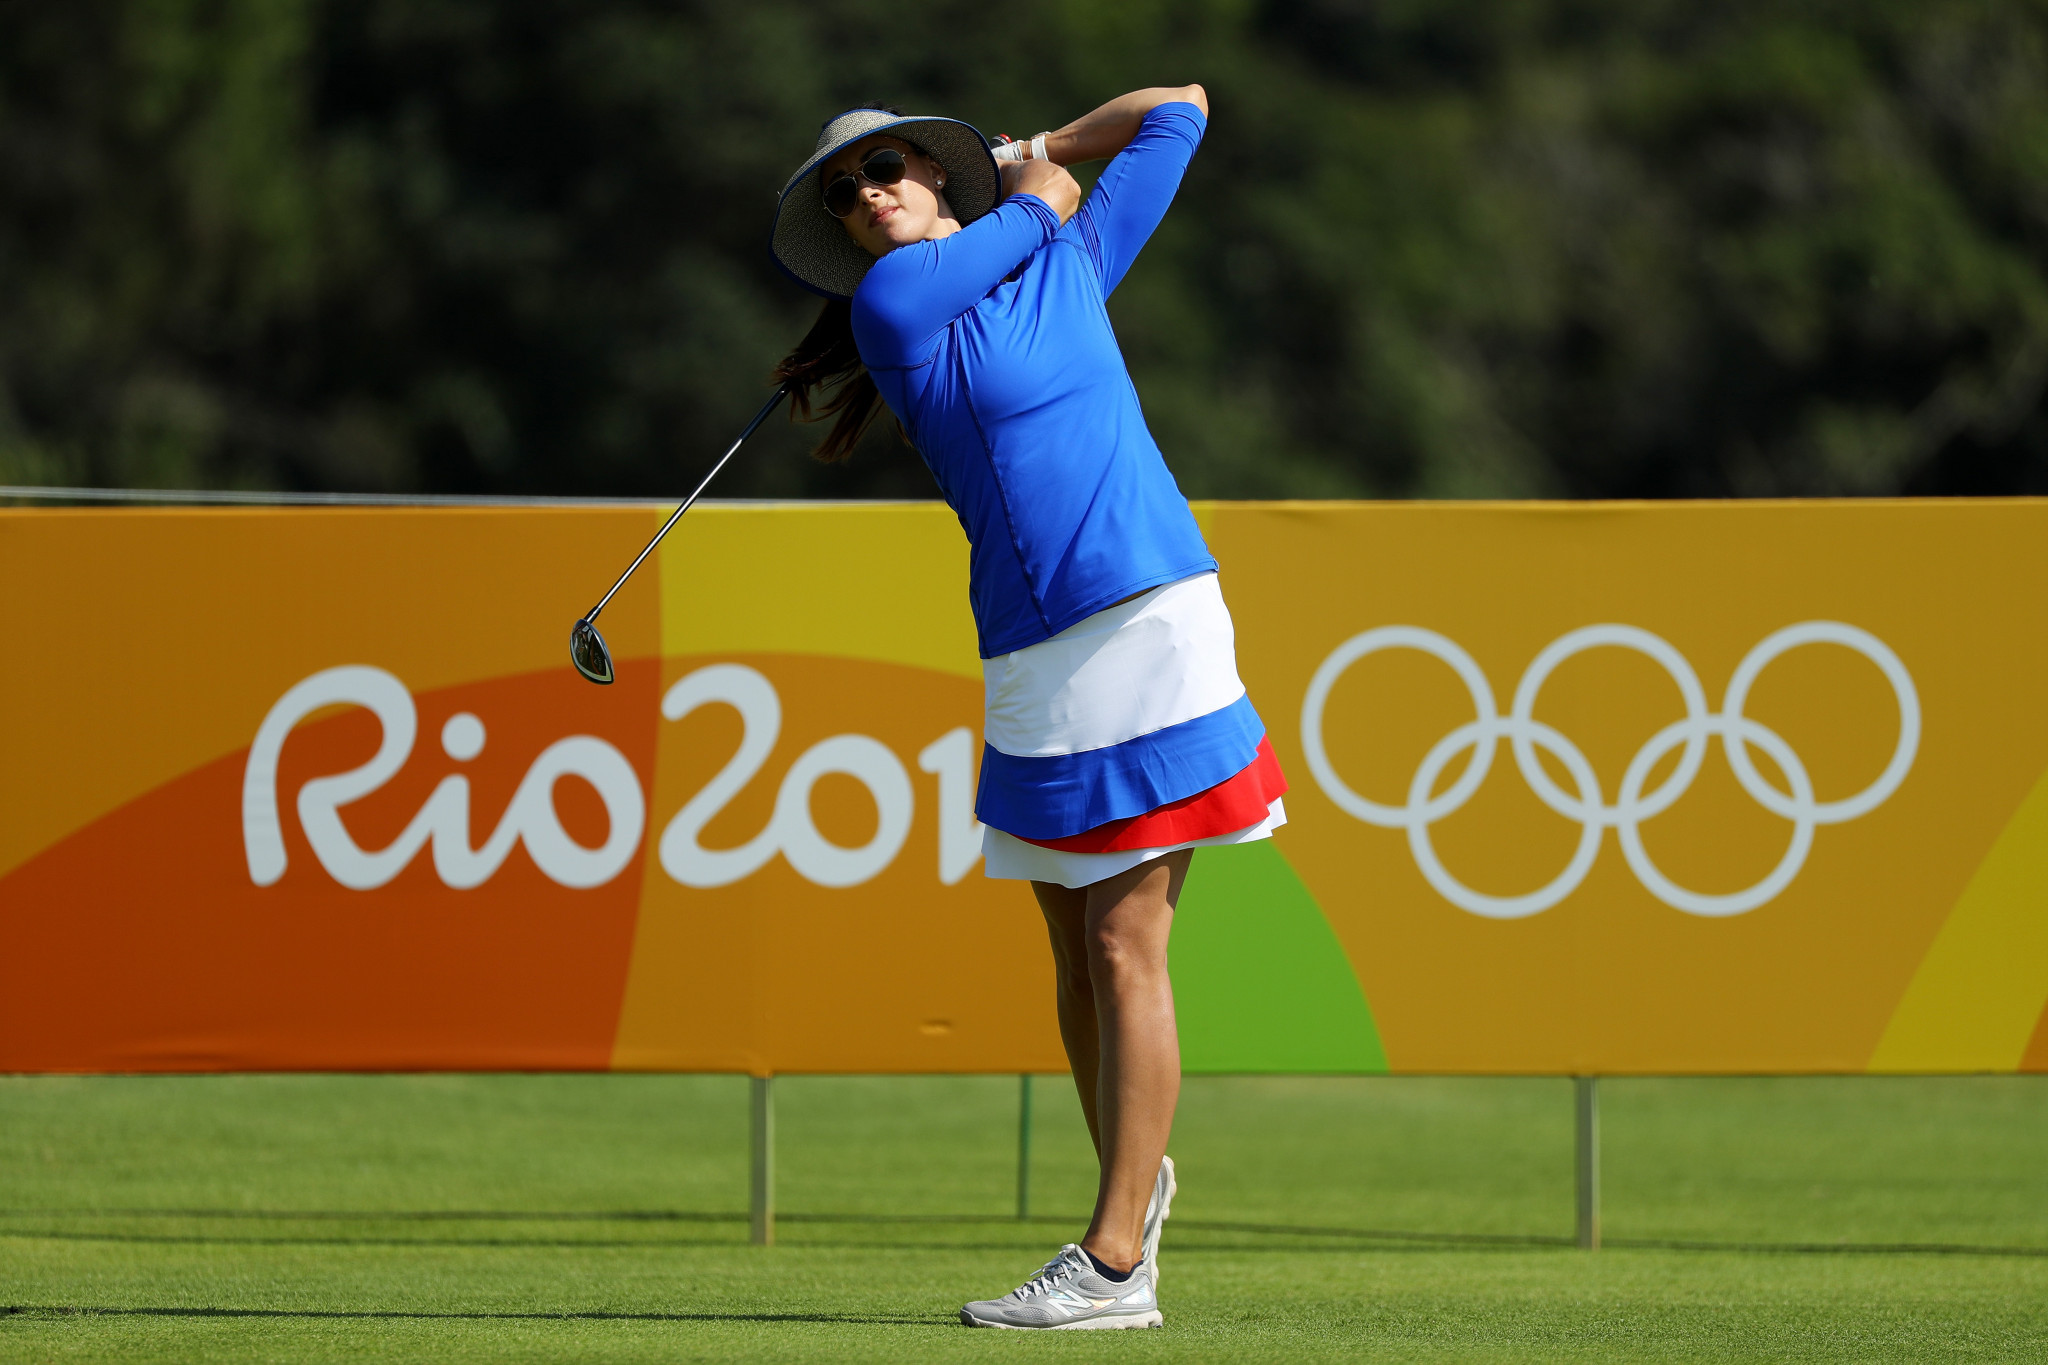 Maria Verchenova, Russia's only representative in the Olympic golf tournament at RIo 2016, hit a hole-in-one in the fourth round as she set a course record of 62 to finish 15th ©Getty Images